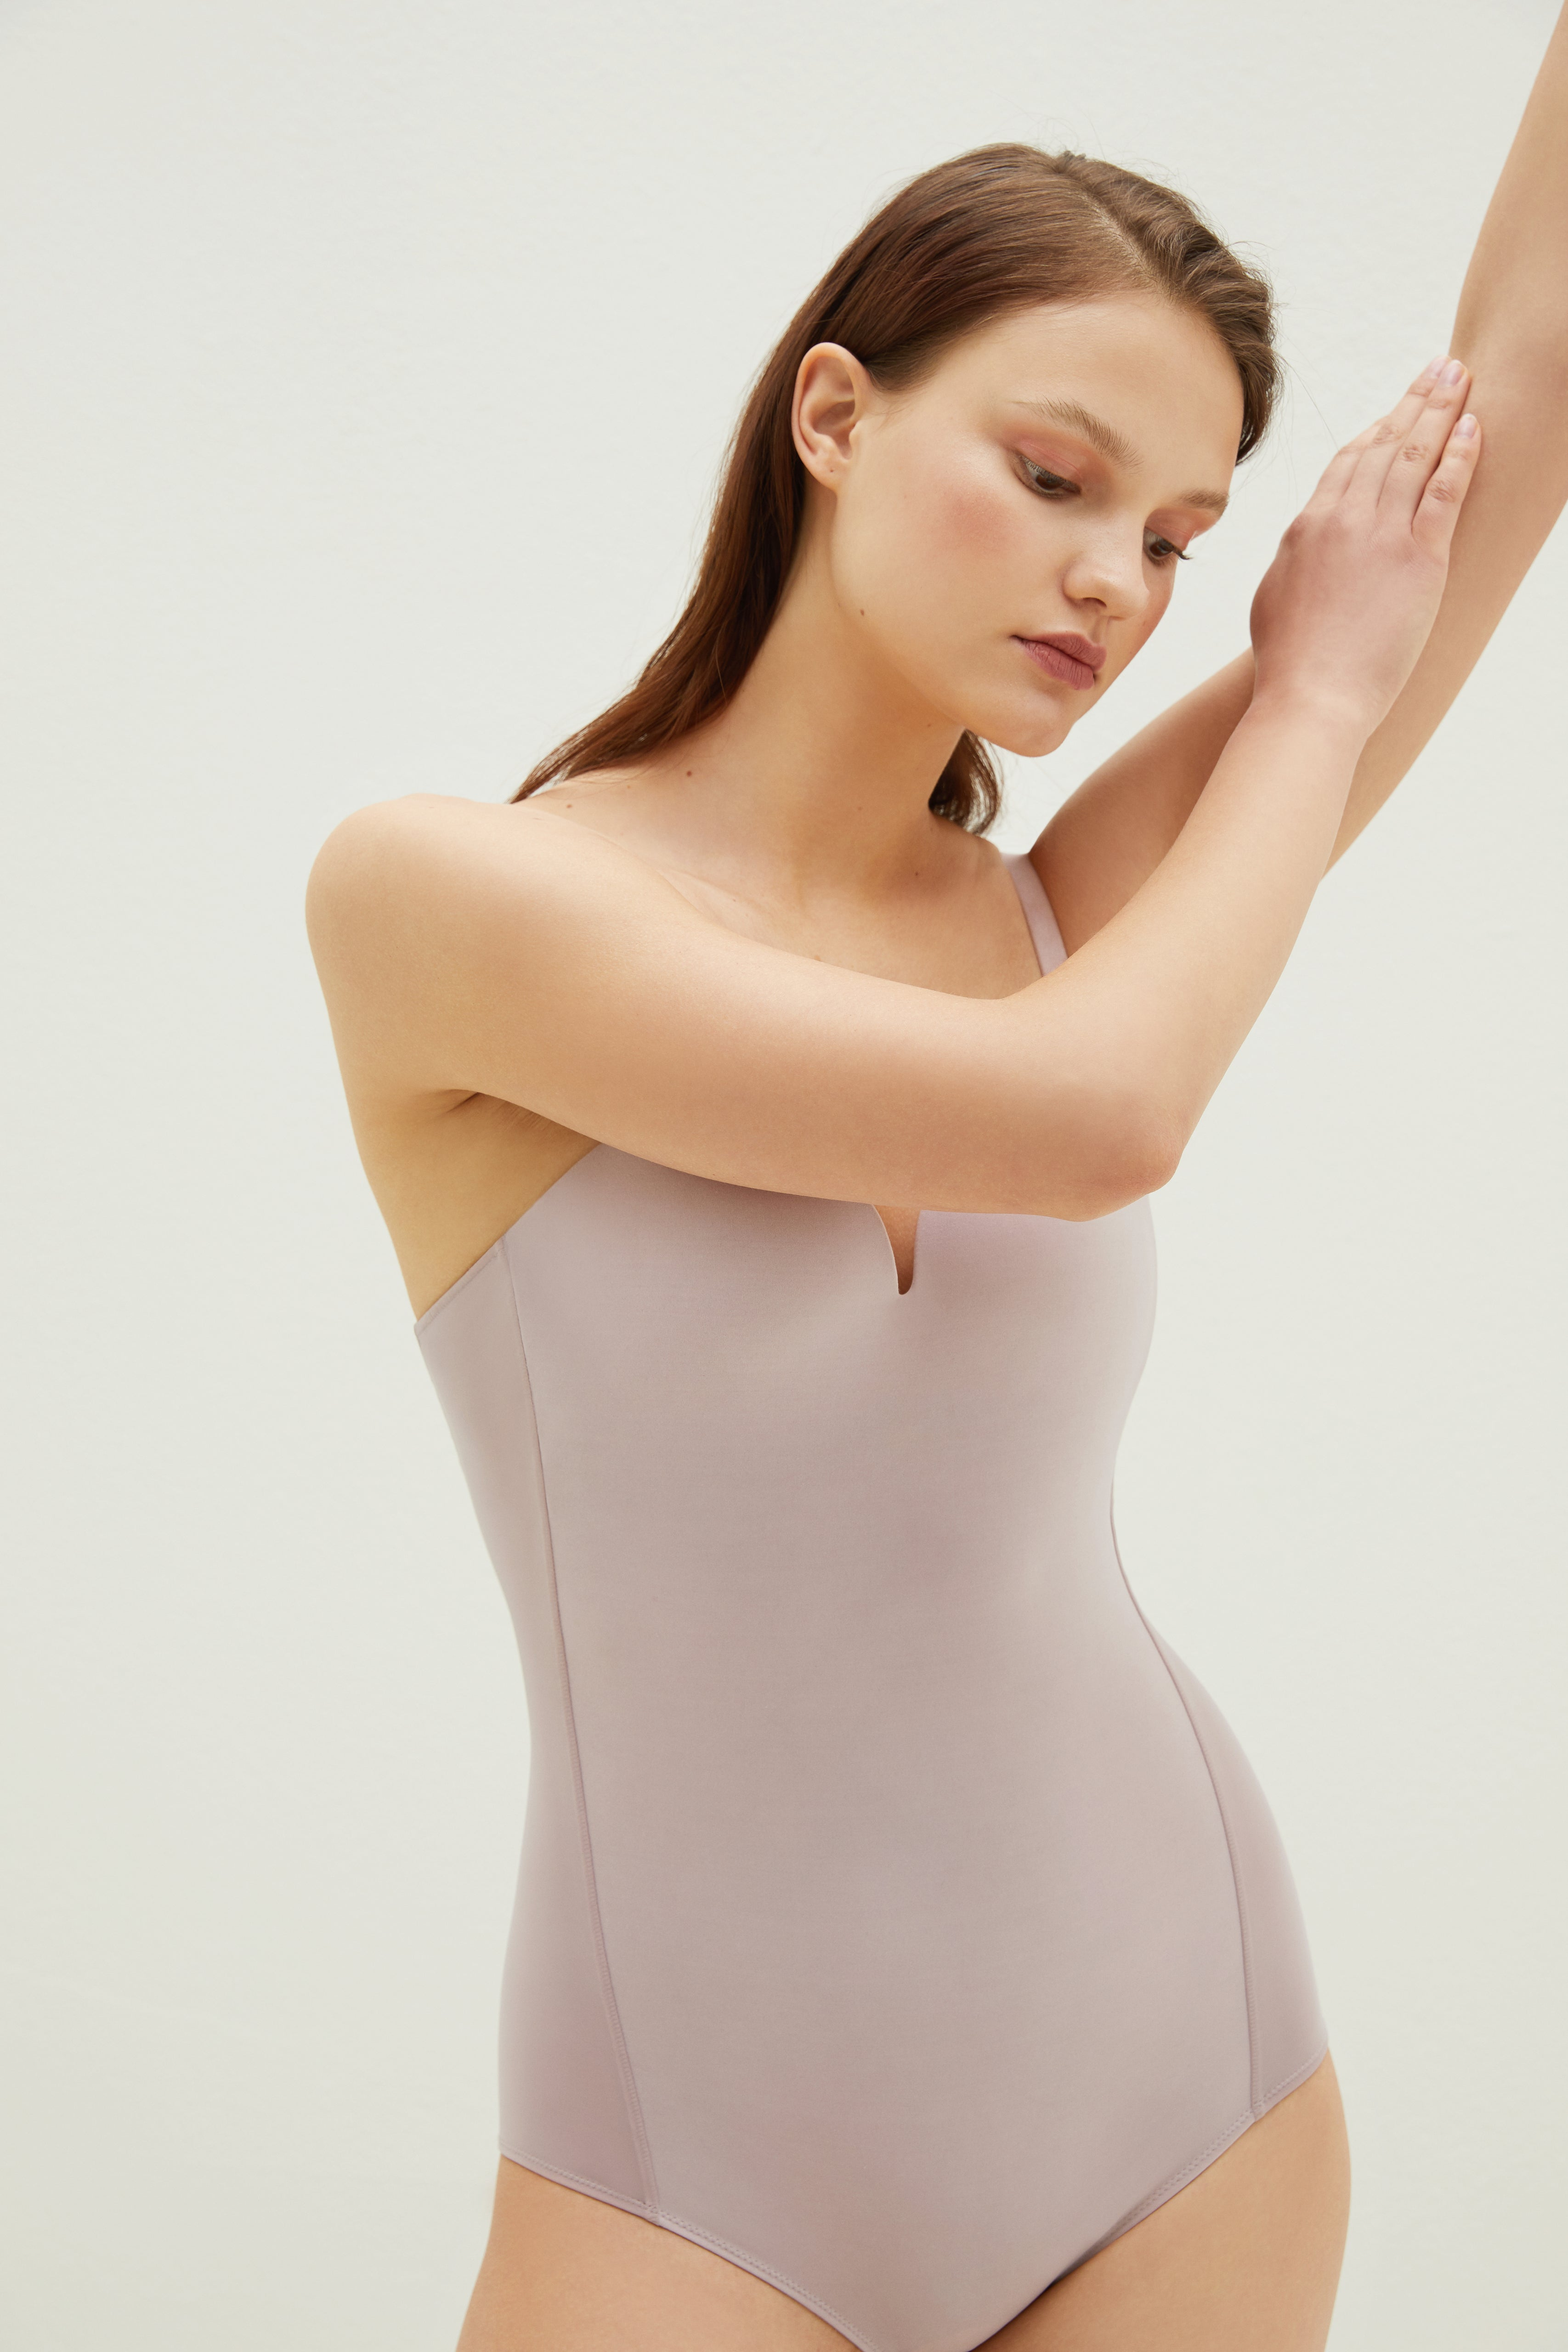 Model wearing NEIWAI's Pure Beauty Matte Plunged V-back Bodysuit in Lilac Ash.